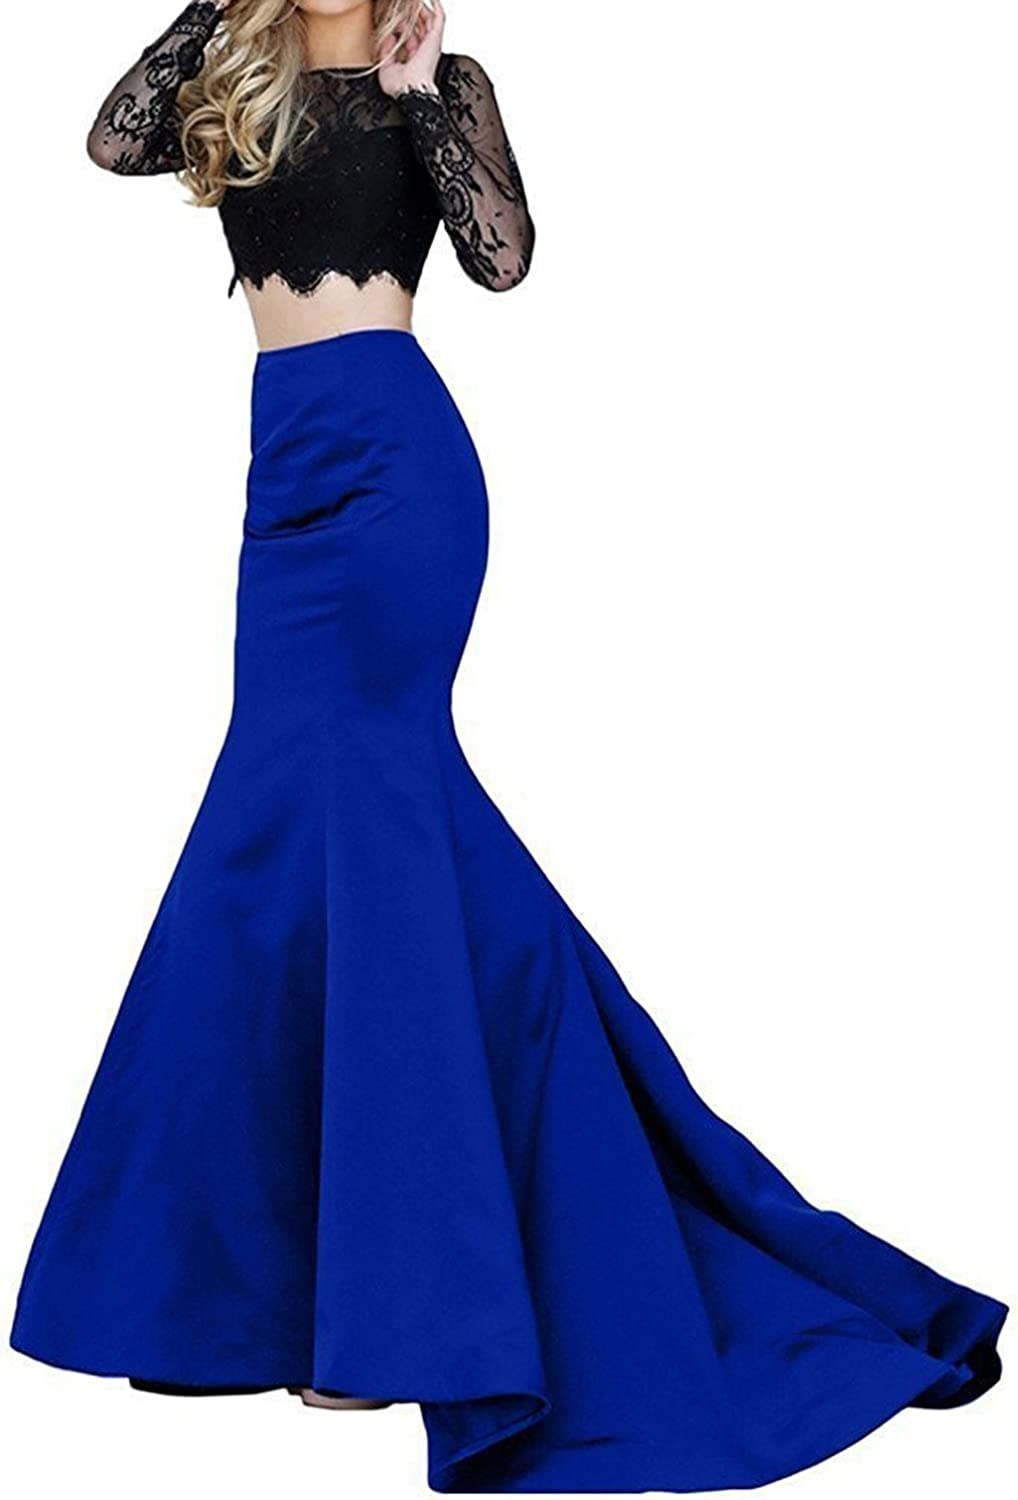 LUBridal Women Satin Two Piece Long Sleeve Lace Top Mermaid Prom Dress 2018 Evening Gown